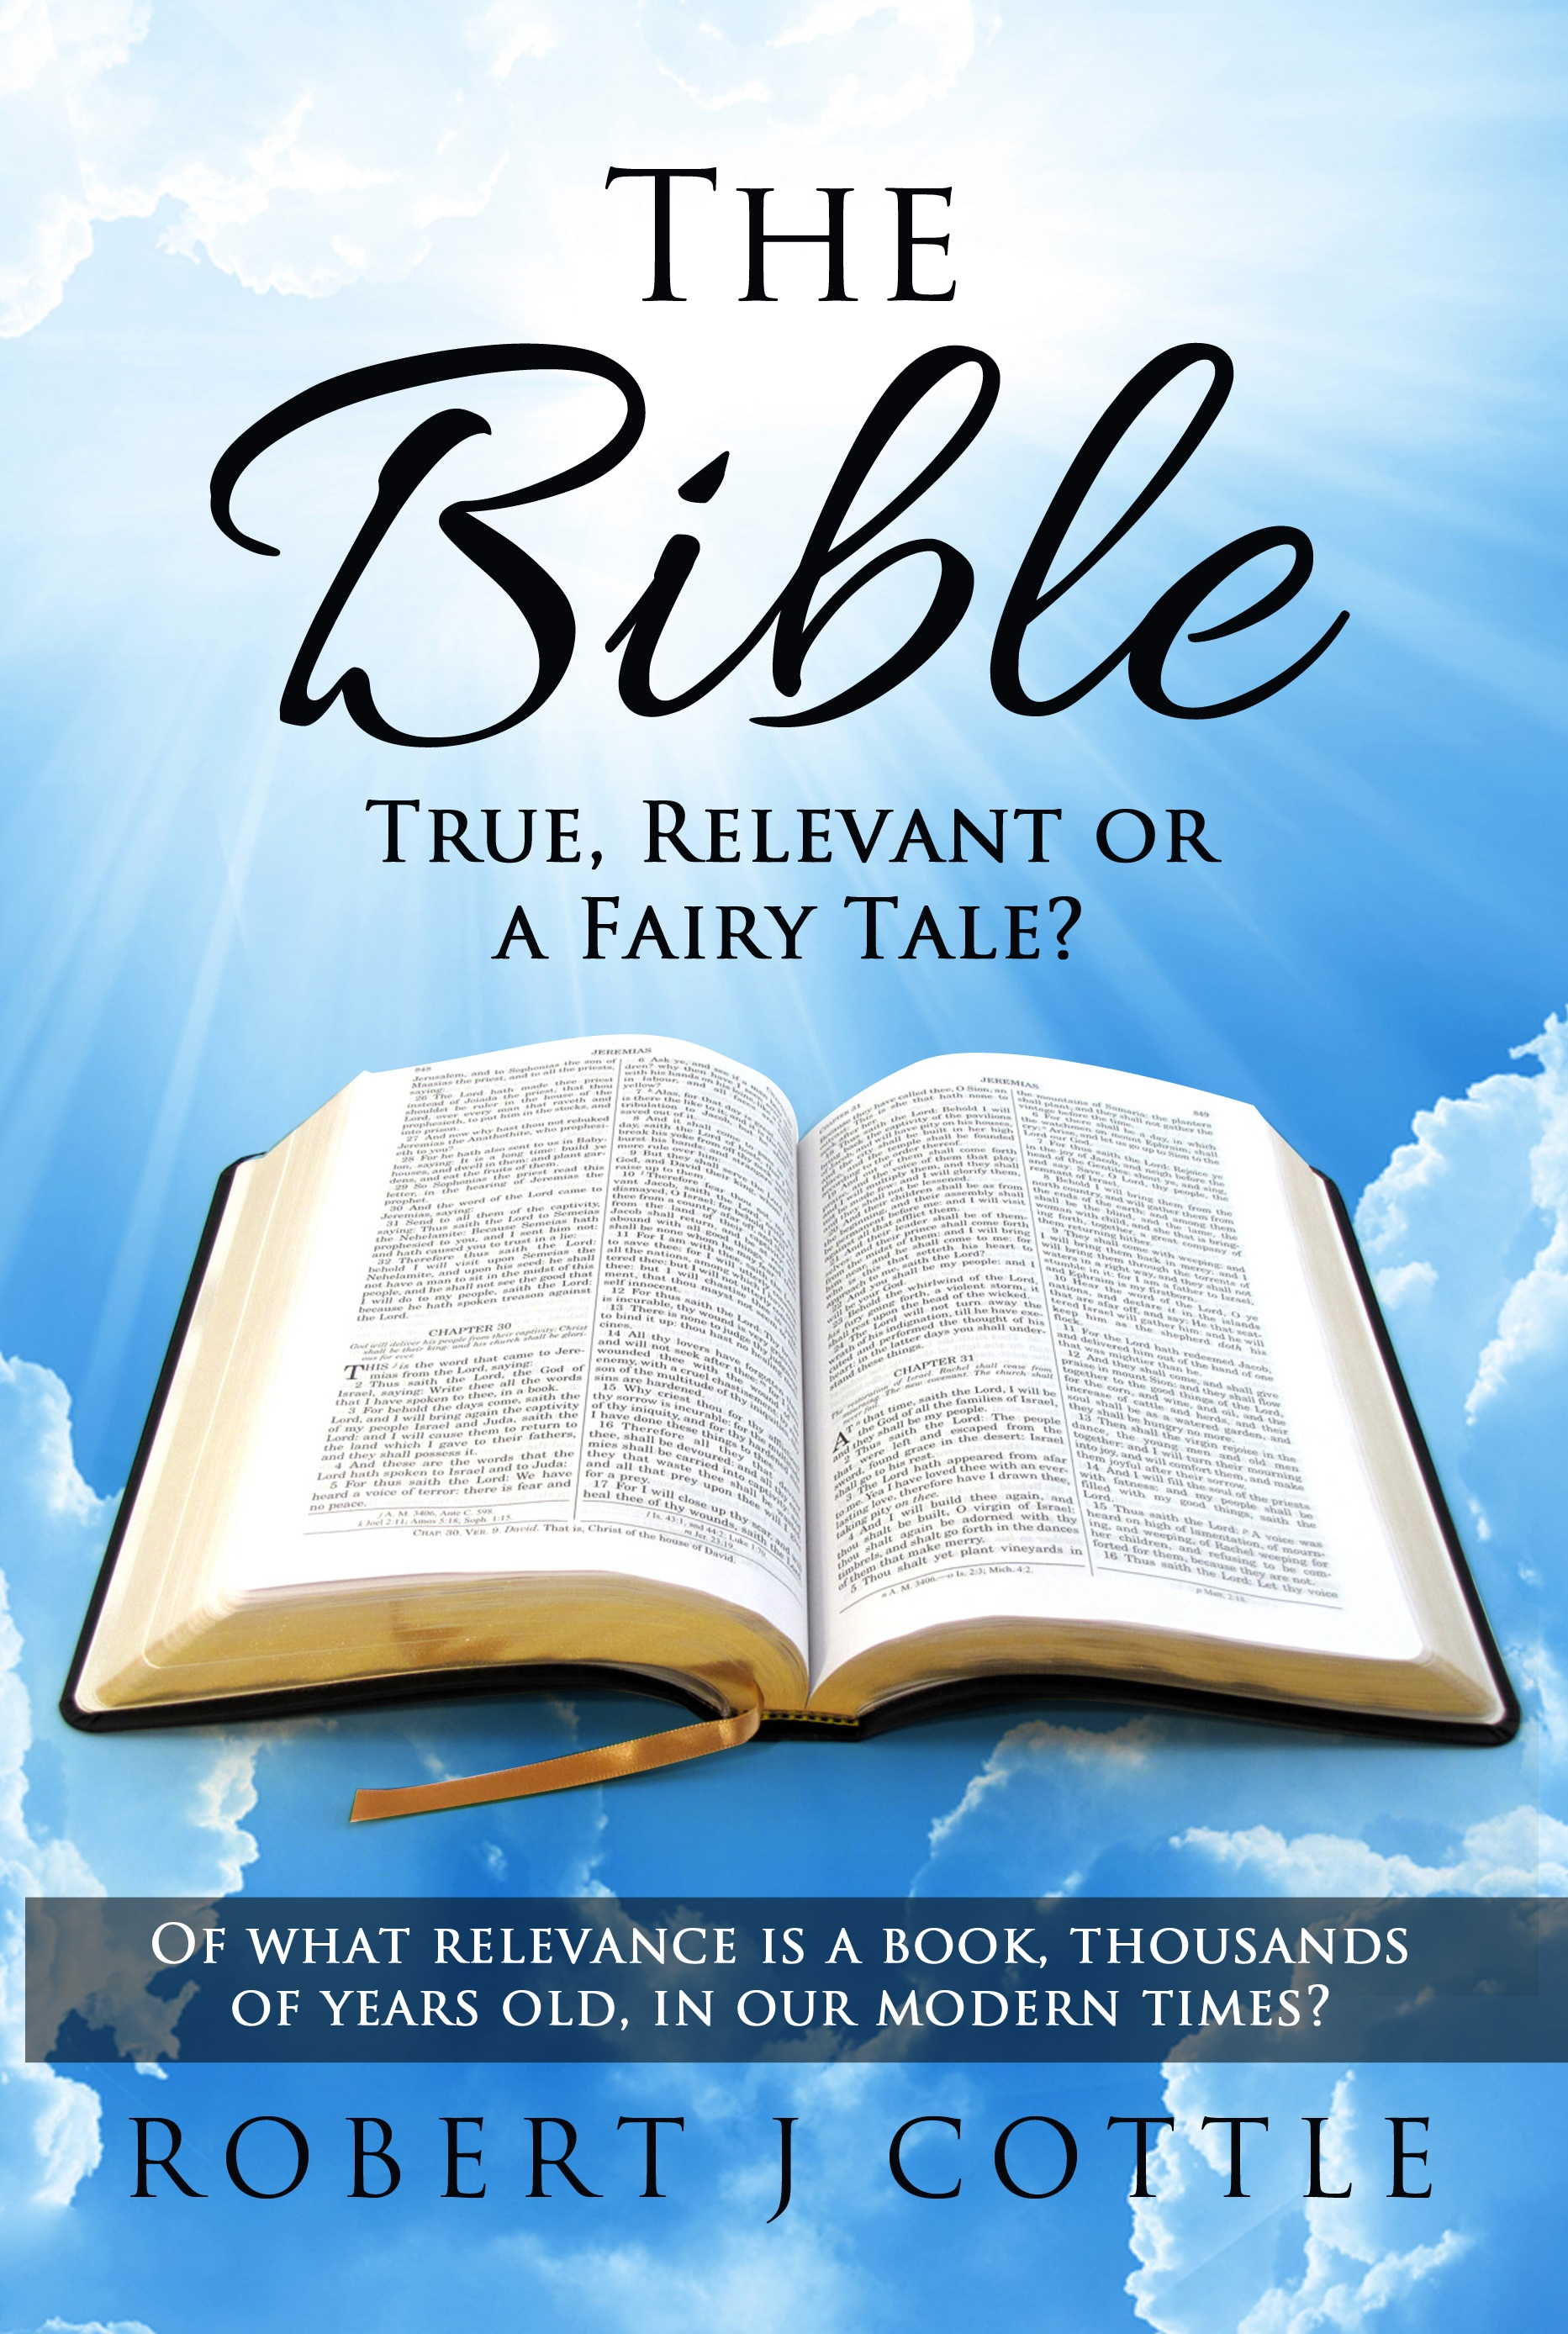 The bible true, relevant or a fairy tale?